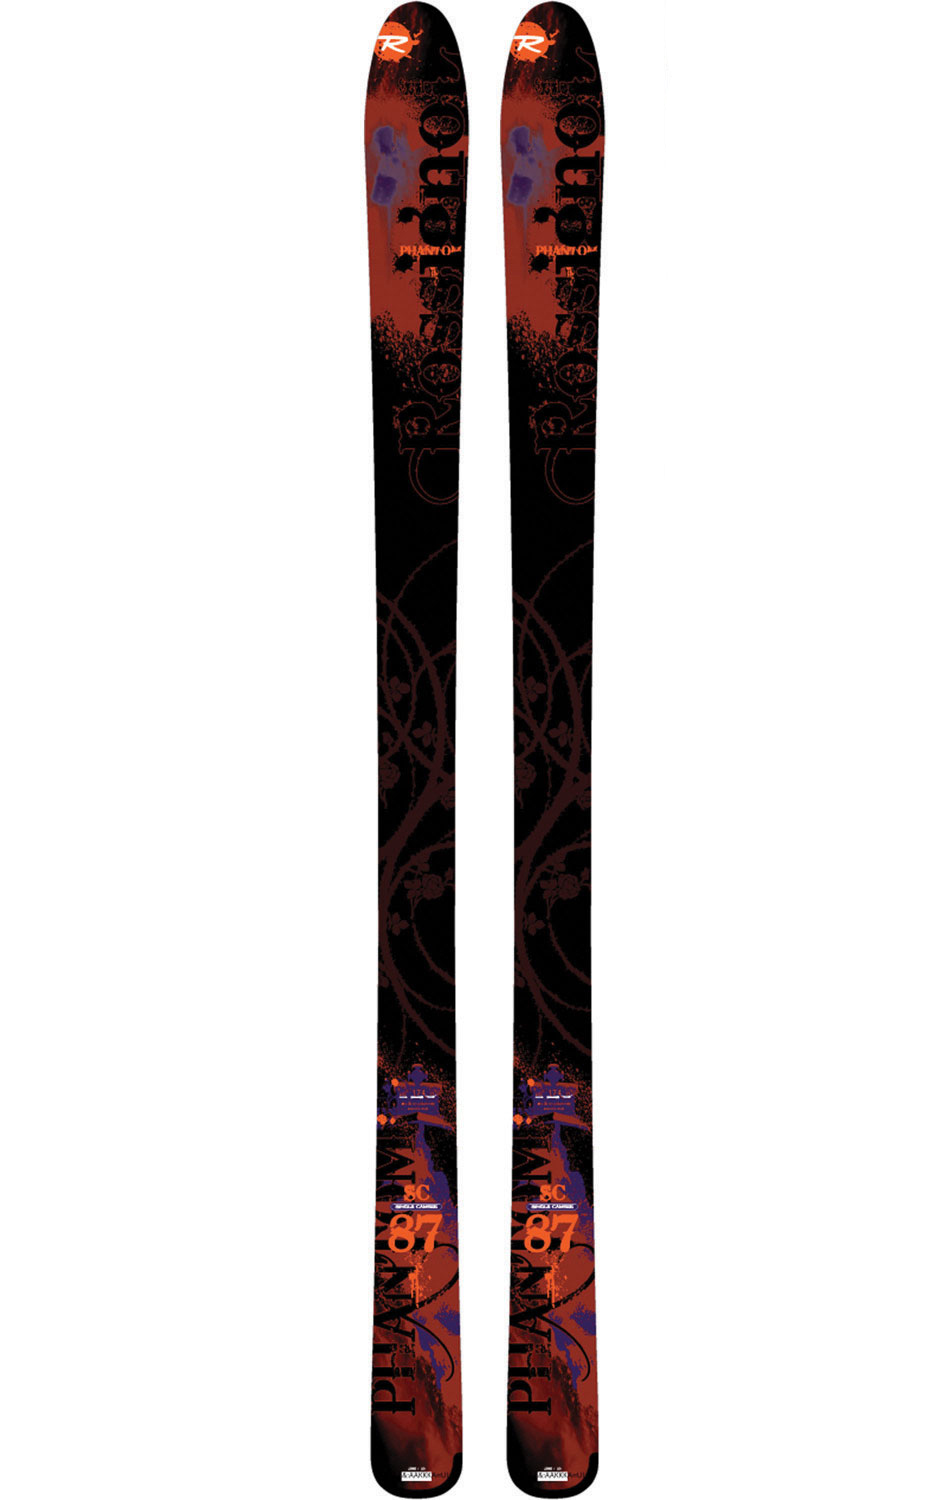 Ski The SC87 arose from overwhelming demand from retailers and consumers seeking the perfect freeride all-mountain ski from Rossignol.  and it has arrived! The SC87 has the heart of a high-performance carving machine with a freeride touch and feel. This all-mountain ski is perfectly balanced for ripping rail-to-rail on the groomers. With its wide waist, it floats through powder and crud with the best of any backcountry ski. With titanium sandwiched around a wood core, this is a good skier's dream-come-true. If you are looking for a rocking, all-mountain freeride ski that shines anywhere on the hill, the SC87 is the right choice for you.Key Features of the Rossignol Phantom SC87 Skis:  60% Off-piste / 40% Piste  Flat: Recommended binding - Freeski; 140 L  SPECIFICATIONS: 154cm: r11.3, sc130/86.5/116  162cm: r12.8, sc130/86.5/116  170cm: r14.3, sc130/86.5/116  178cm: r15.9, sc130/86.5/116  186cm: r17.6, sc130/86.5/116 - $374.95